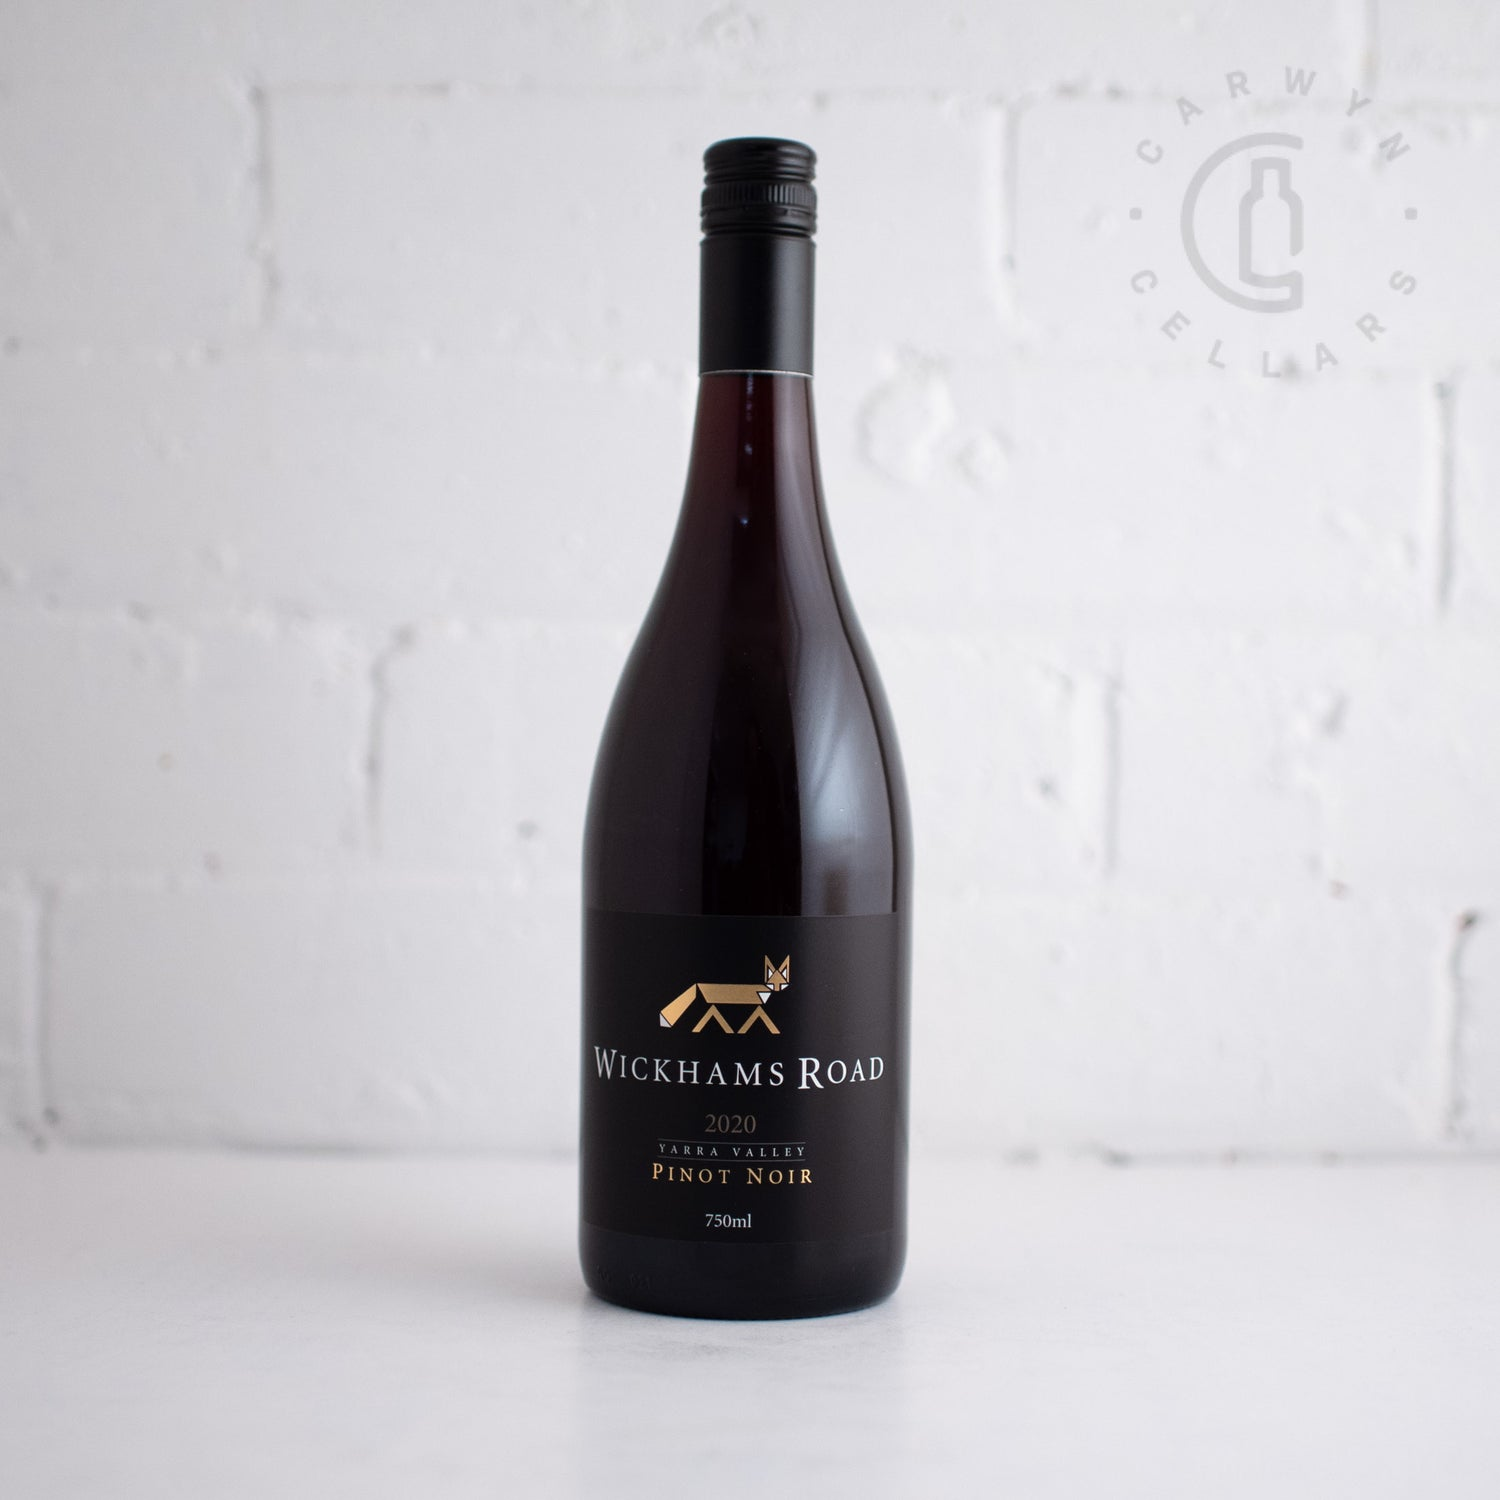 Wickhams Road Yarra Pinot Noir 2020 750ml